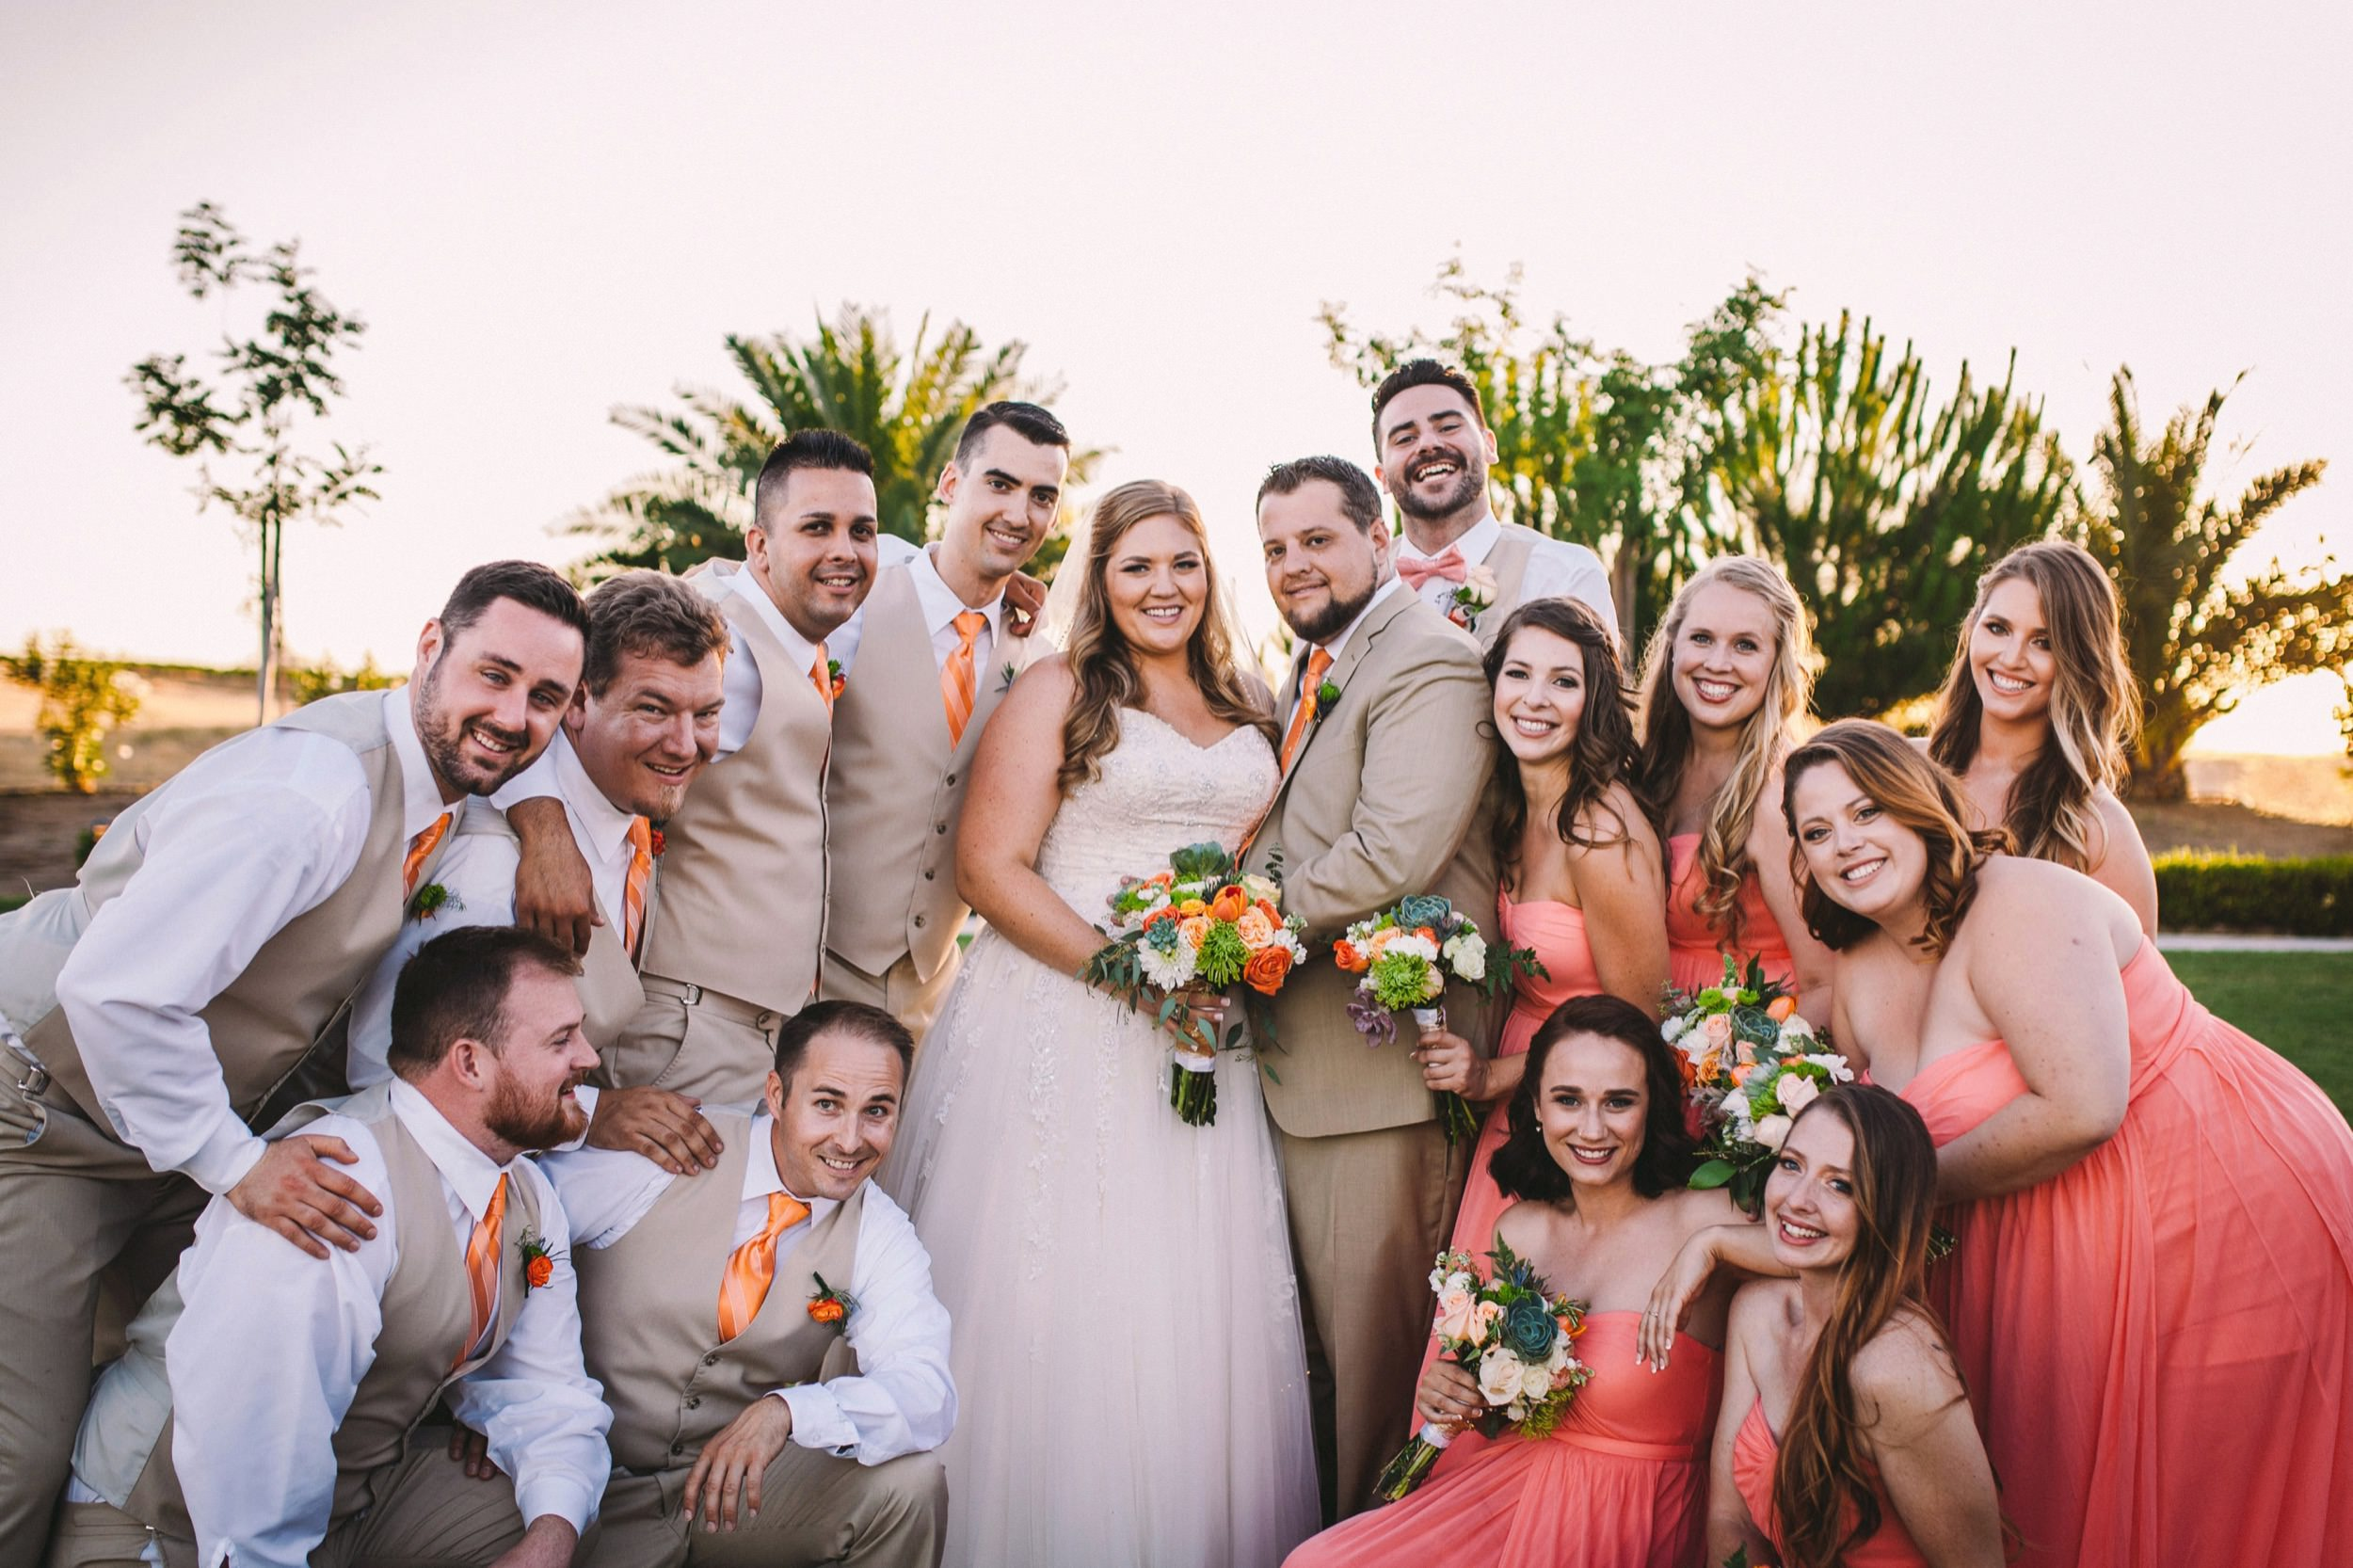 Fun & Informal Bridal Party Group Portrait Wedding Photography - Pink & Orange Theme